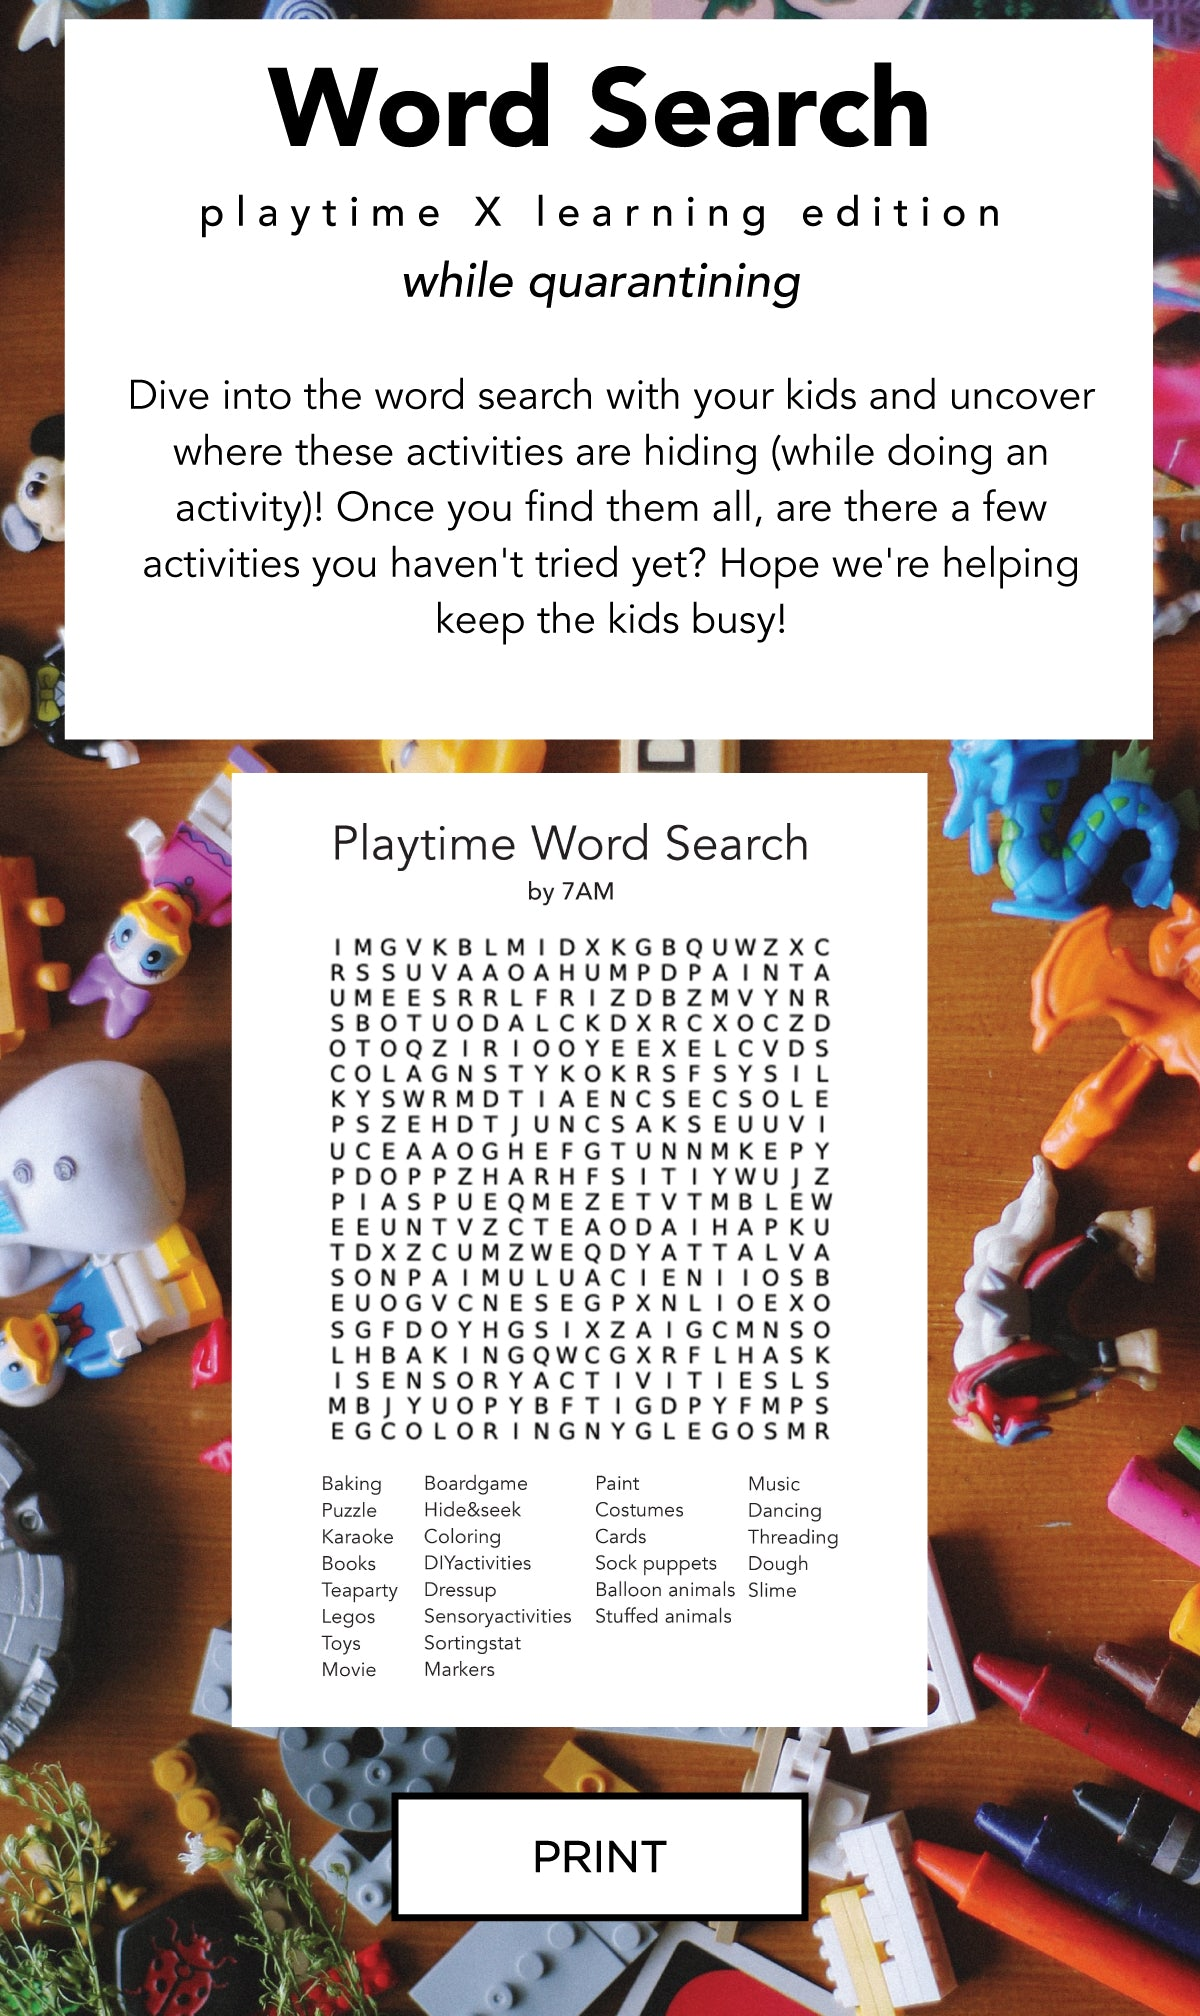 7AM Child playtime word search